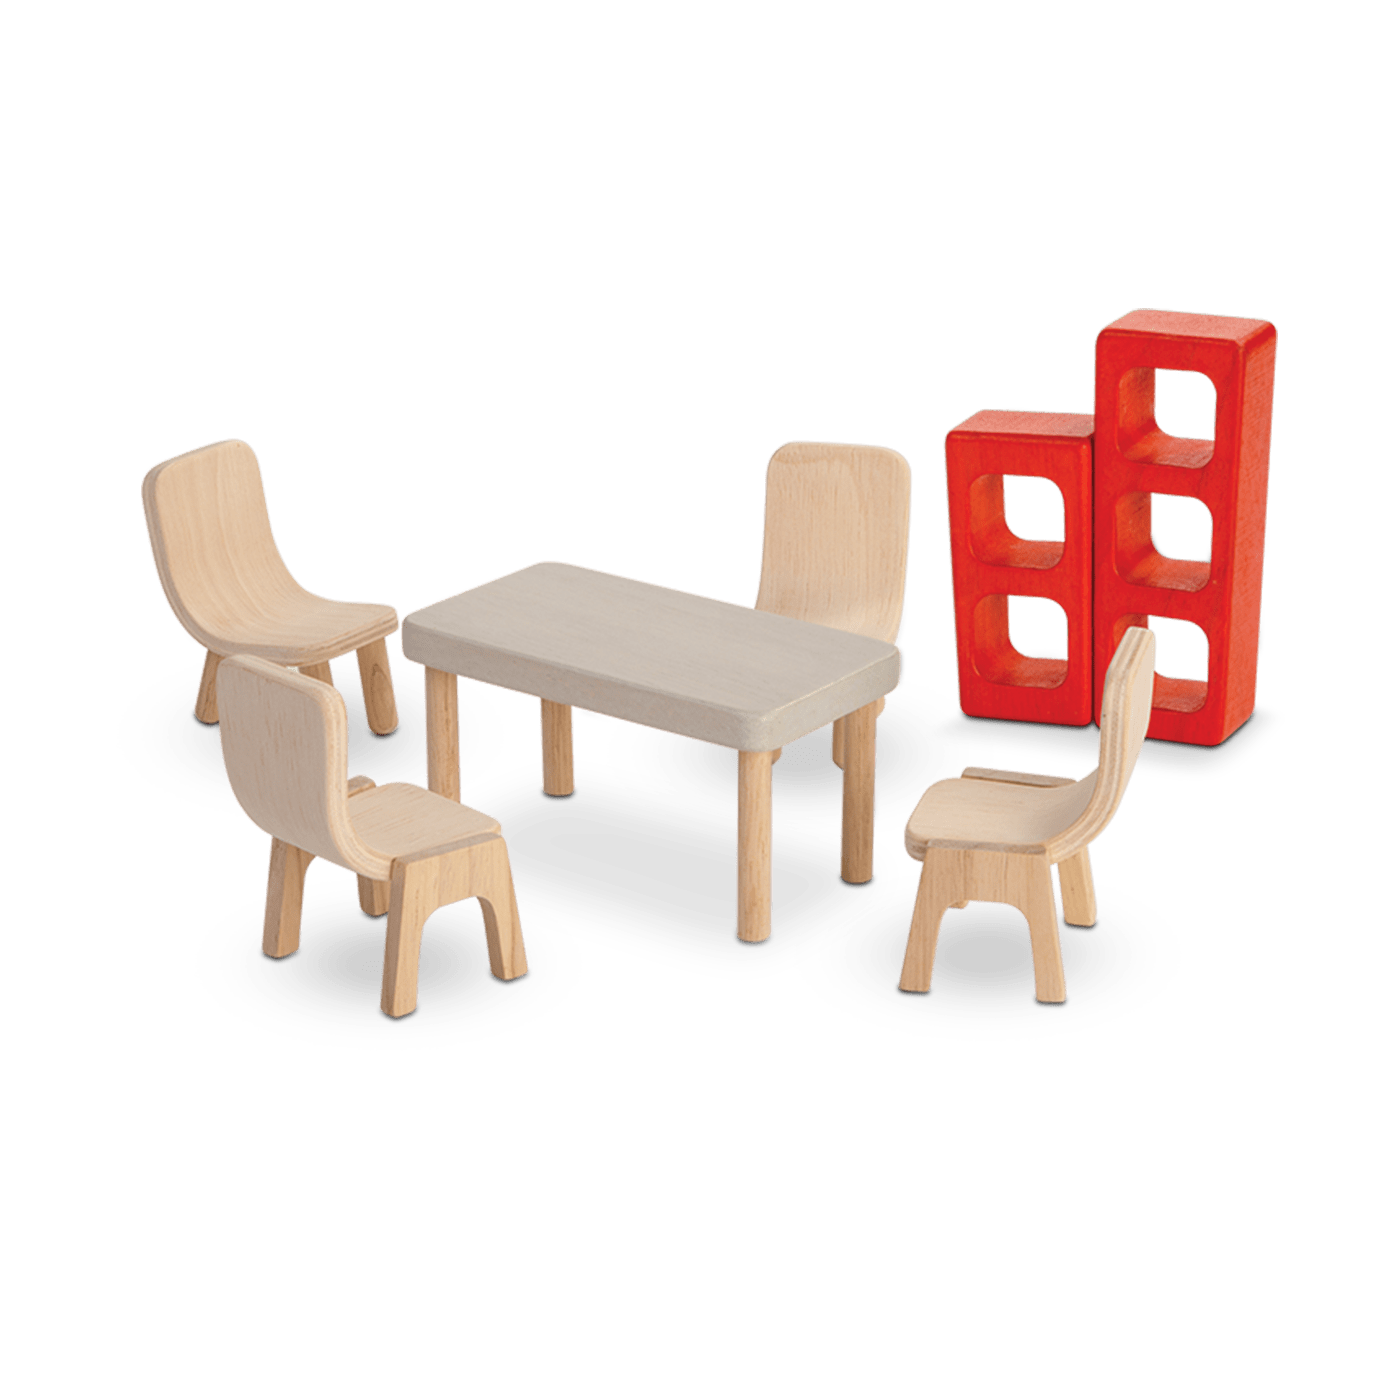 7348_PlanToys_DINING_ROOM_Pretend_Play_Imagination_Social_Language_and_Communications_Fine_Motor_3yrs_Wooden_toys_Education_toys_Safety_Toys_Non-toxic_0.png